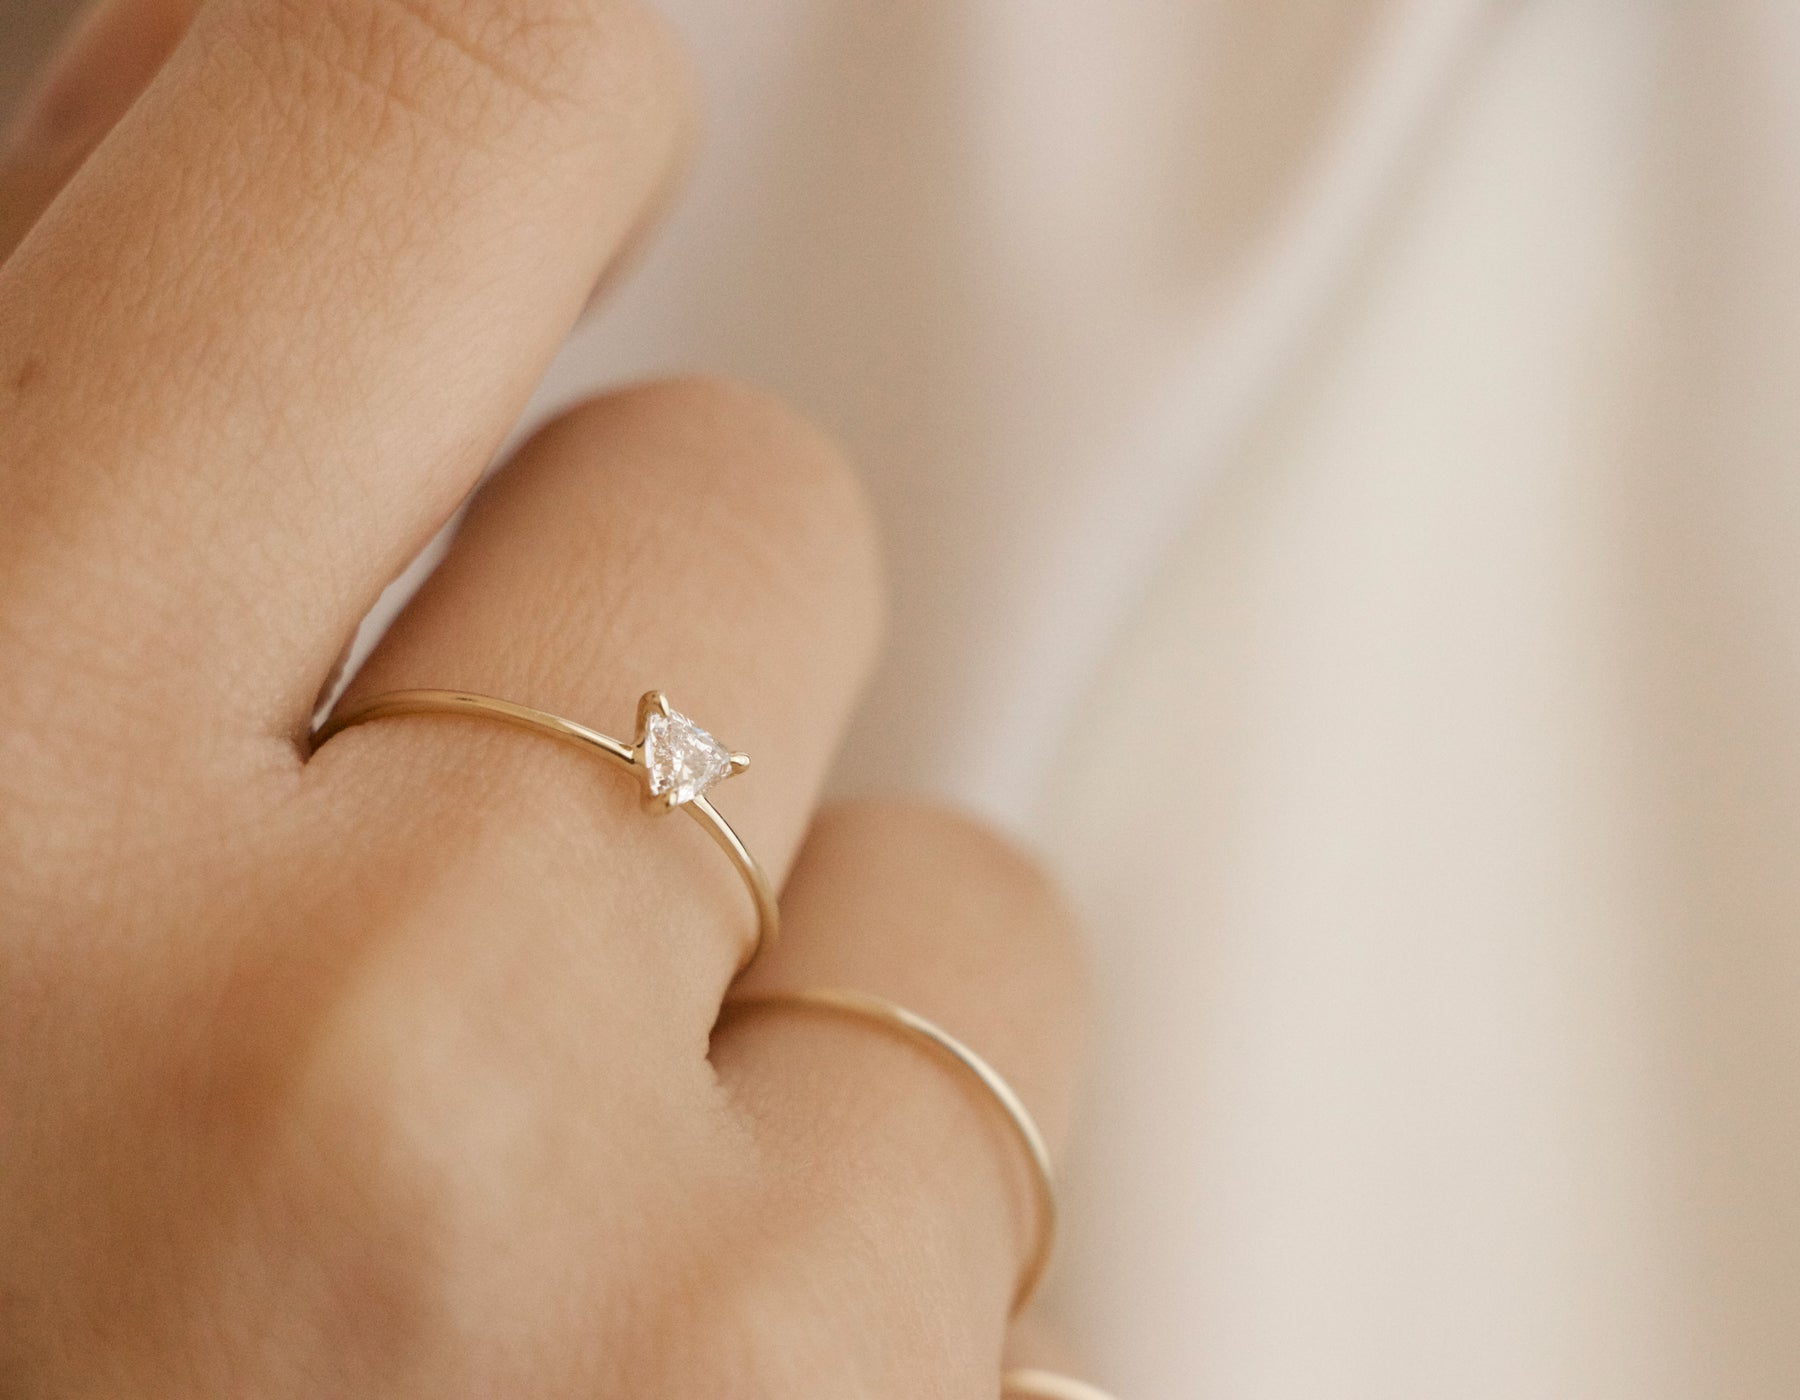 want bridalore wedding to s catching simple ring you eye engagement pin minimalist rings and